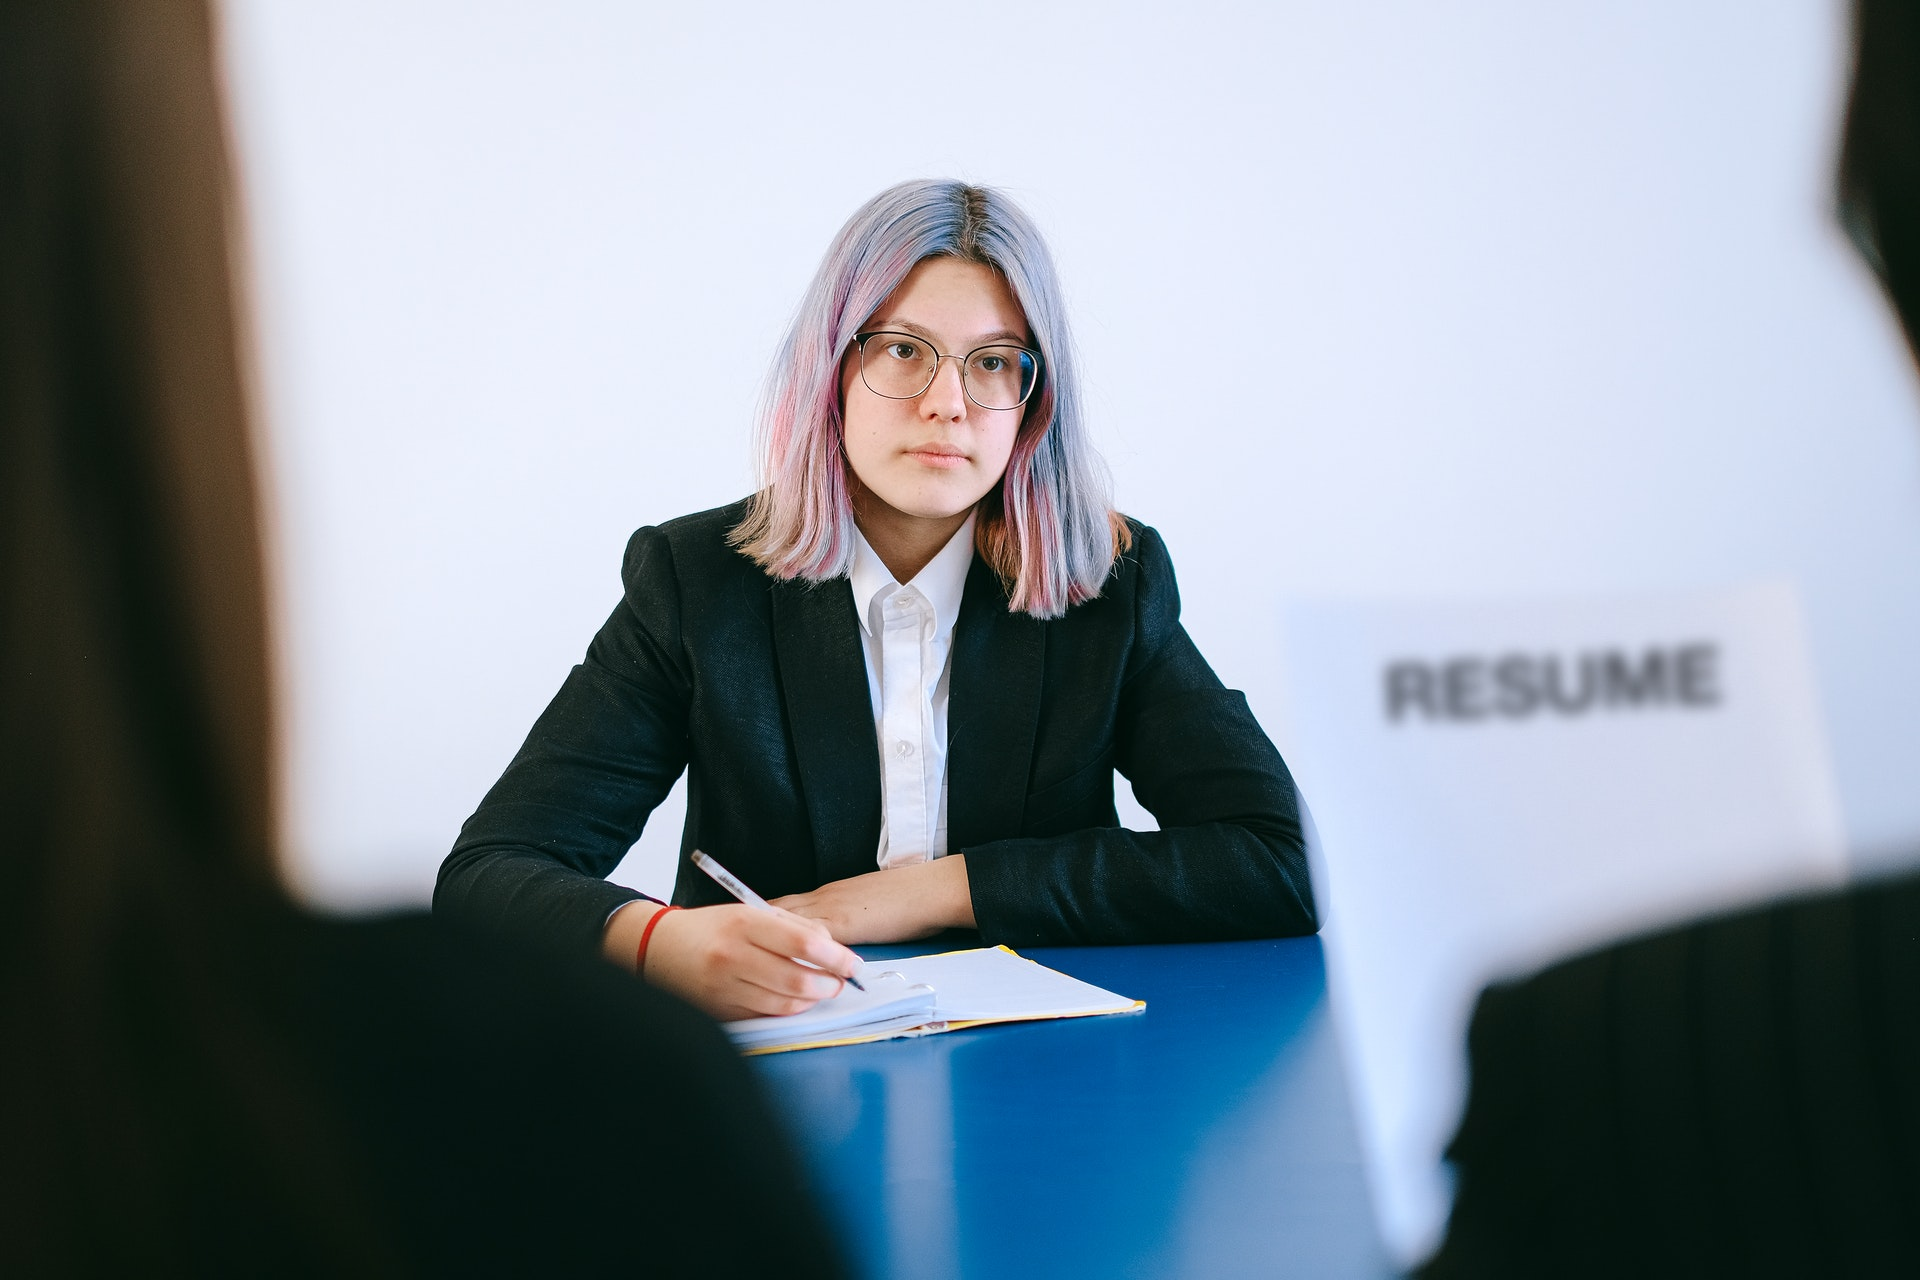 GPA on Resume: Do Grades Matter When Getting a Job?